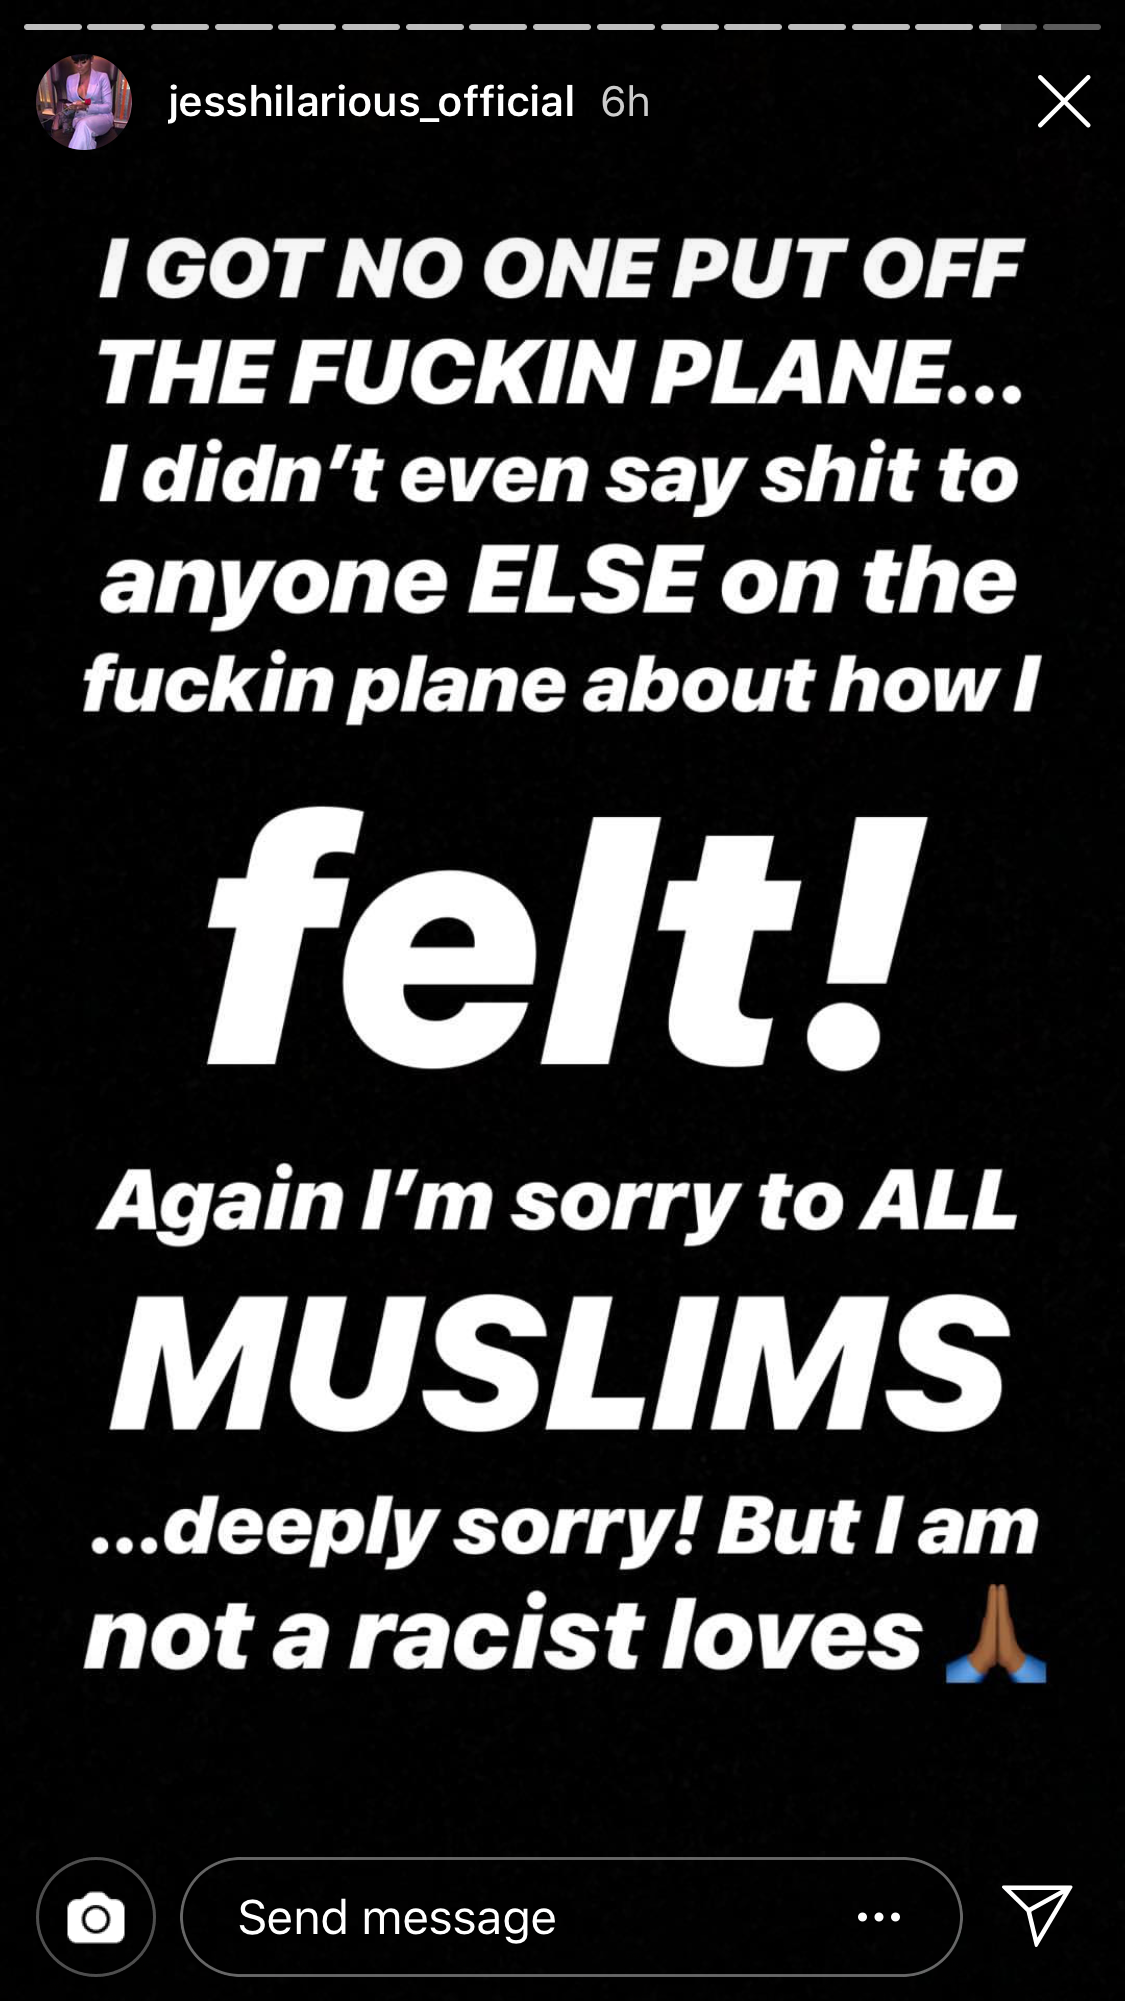 #JessHilarious response to her #xenophobic comments against #Sikhs